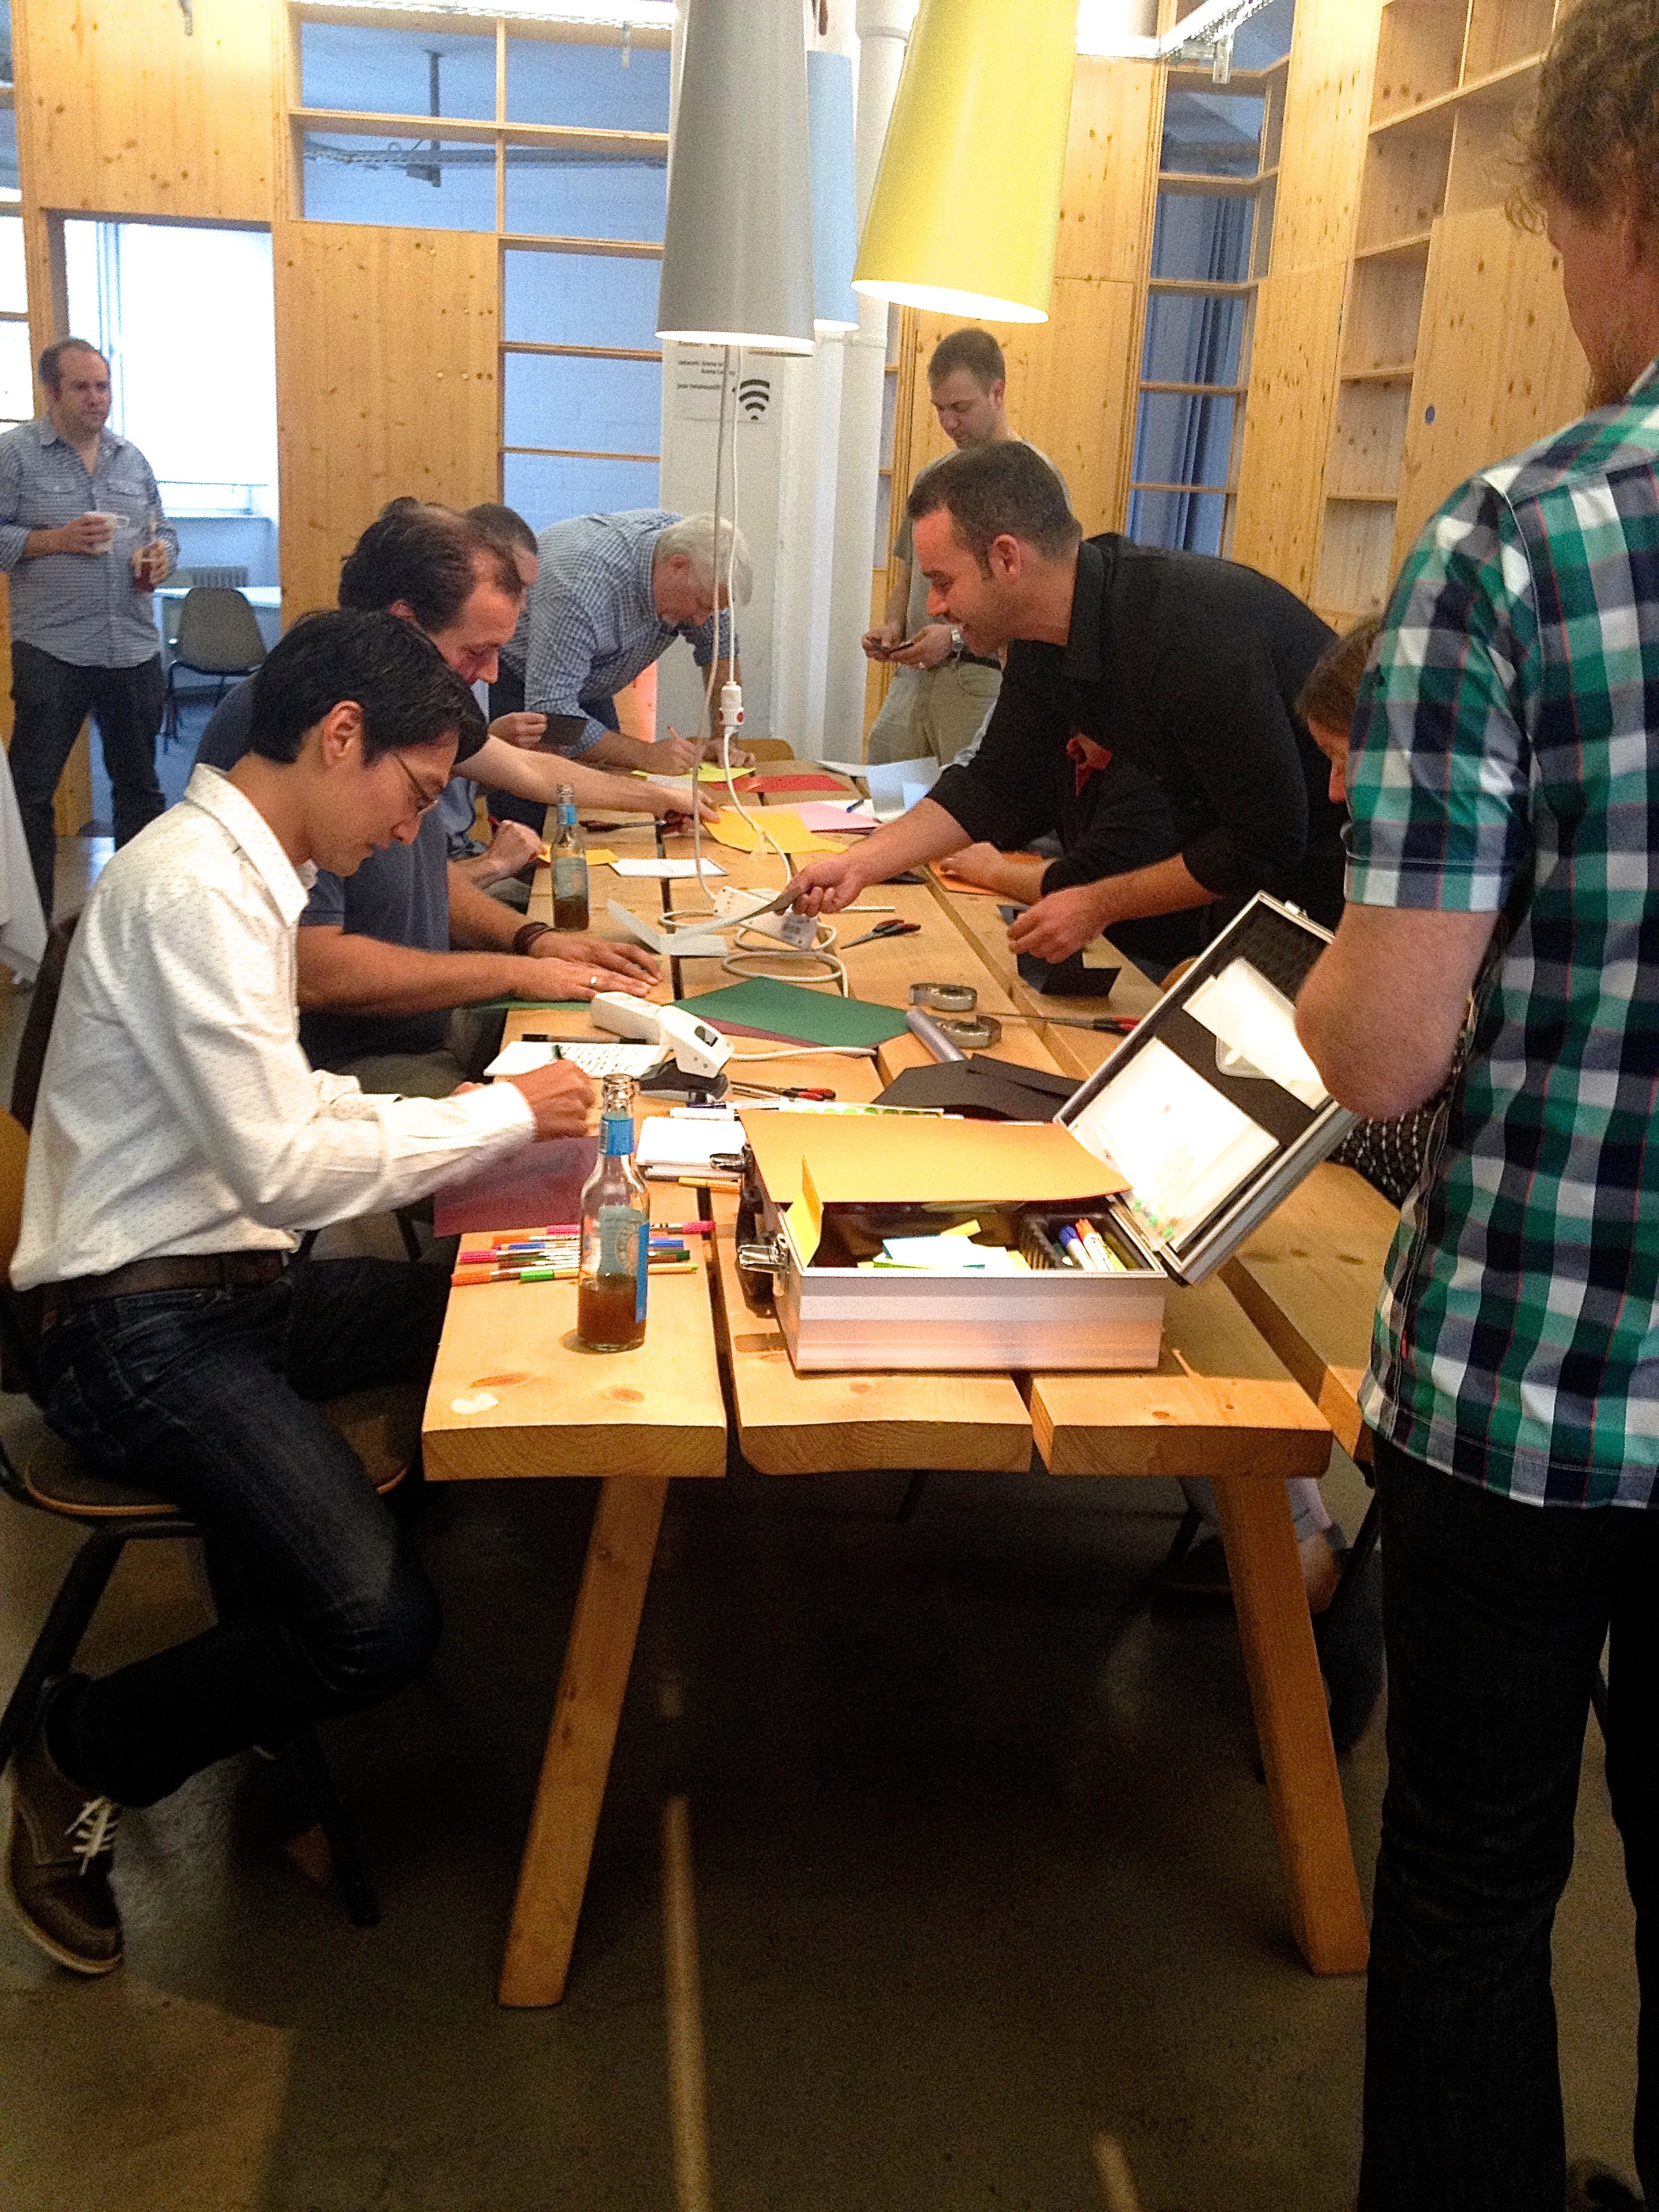 Hands-on Prototyping Exercises